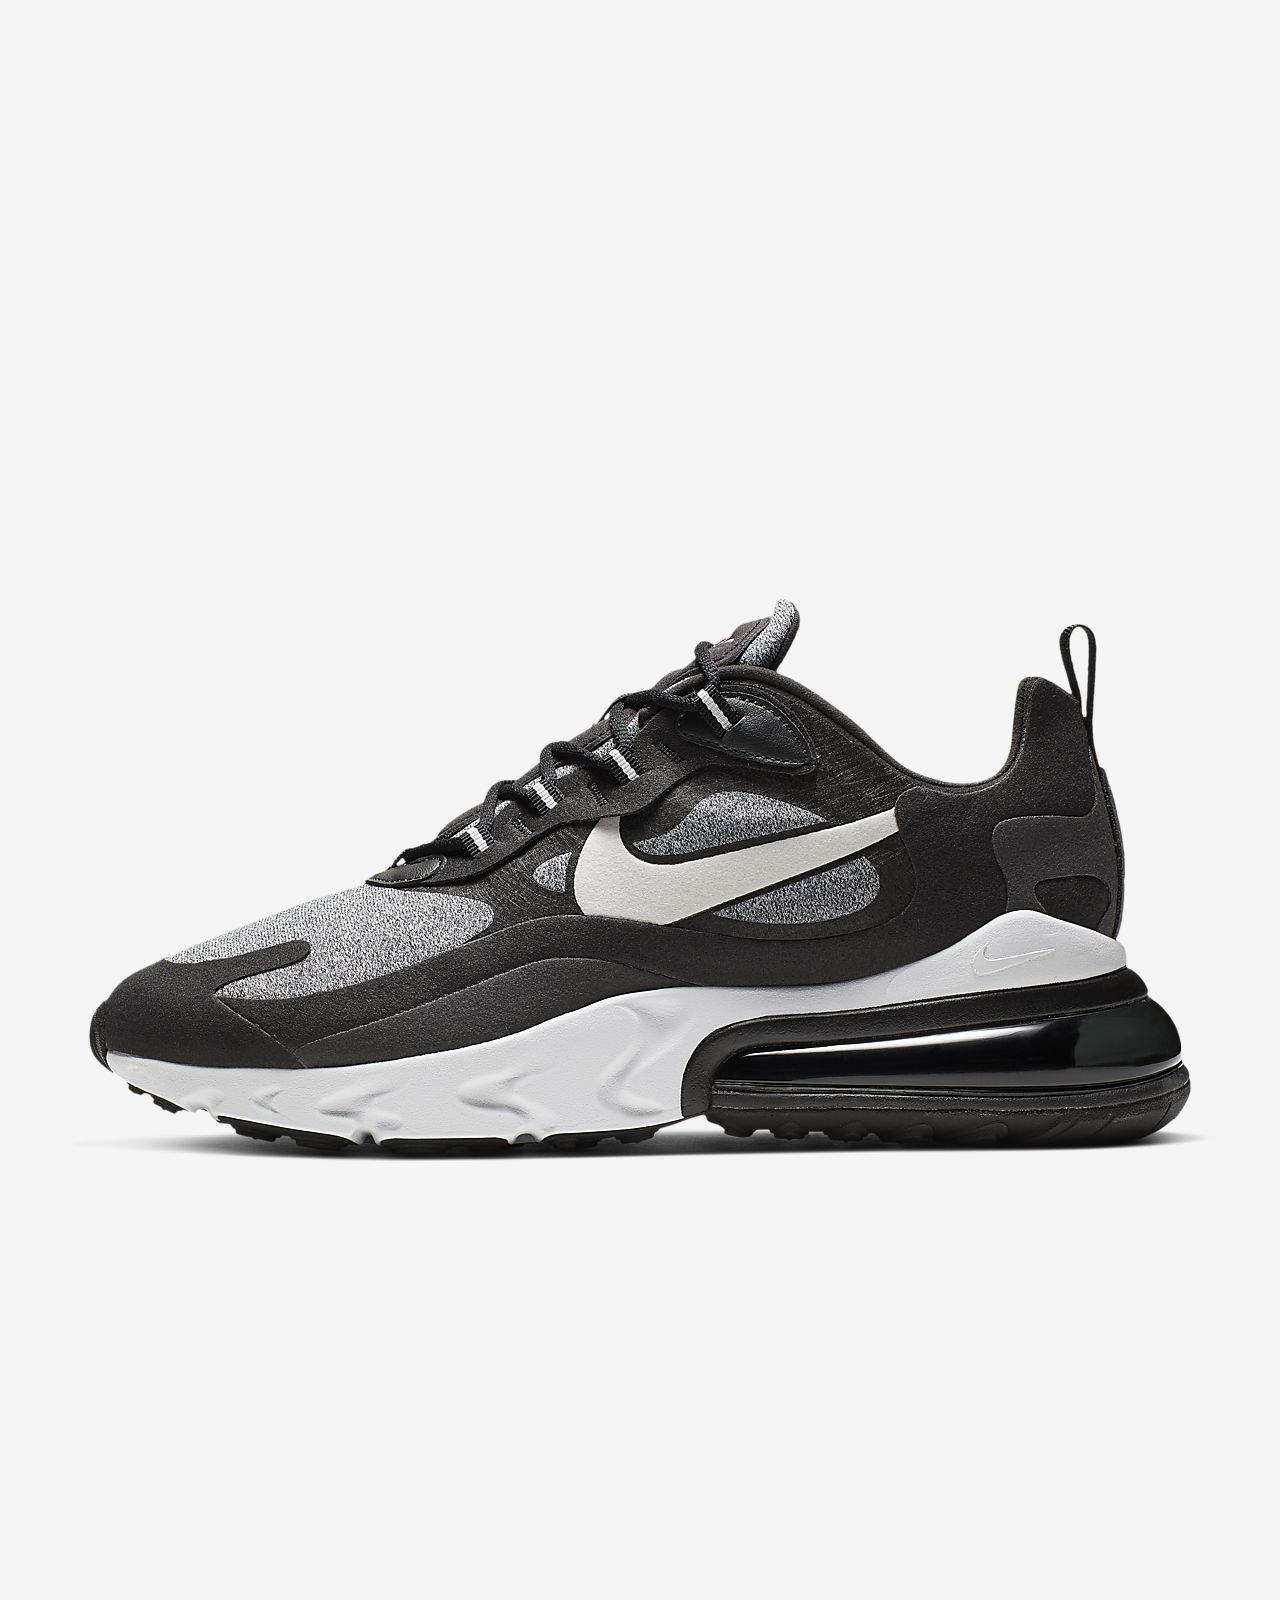 magasin en ligne 59889 25e53 Nike Air Max 270 React (Op Art) Men's Shoes